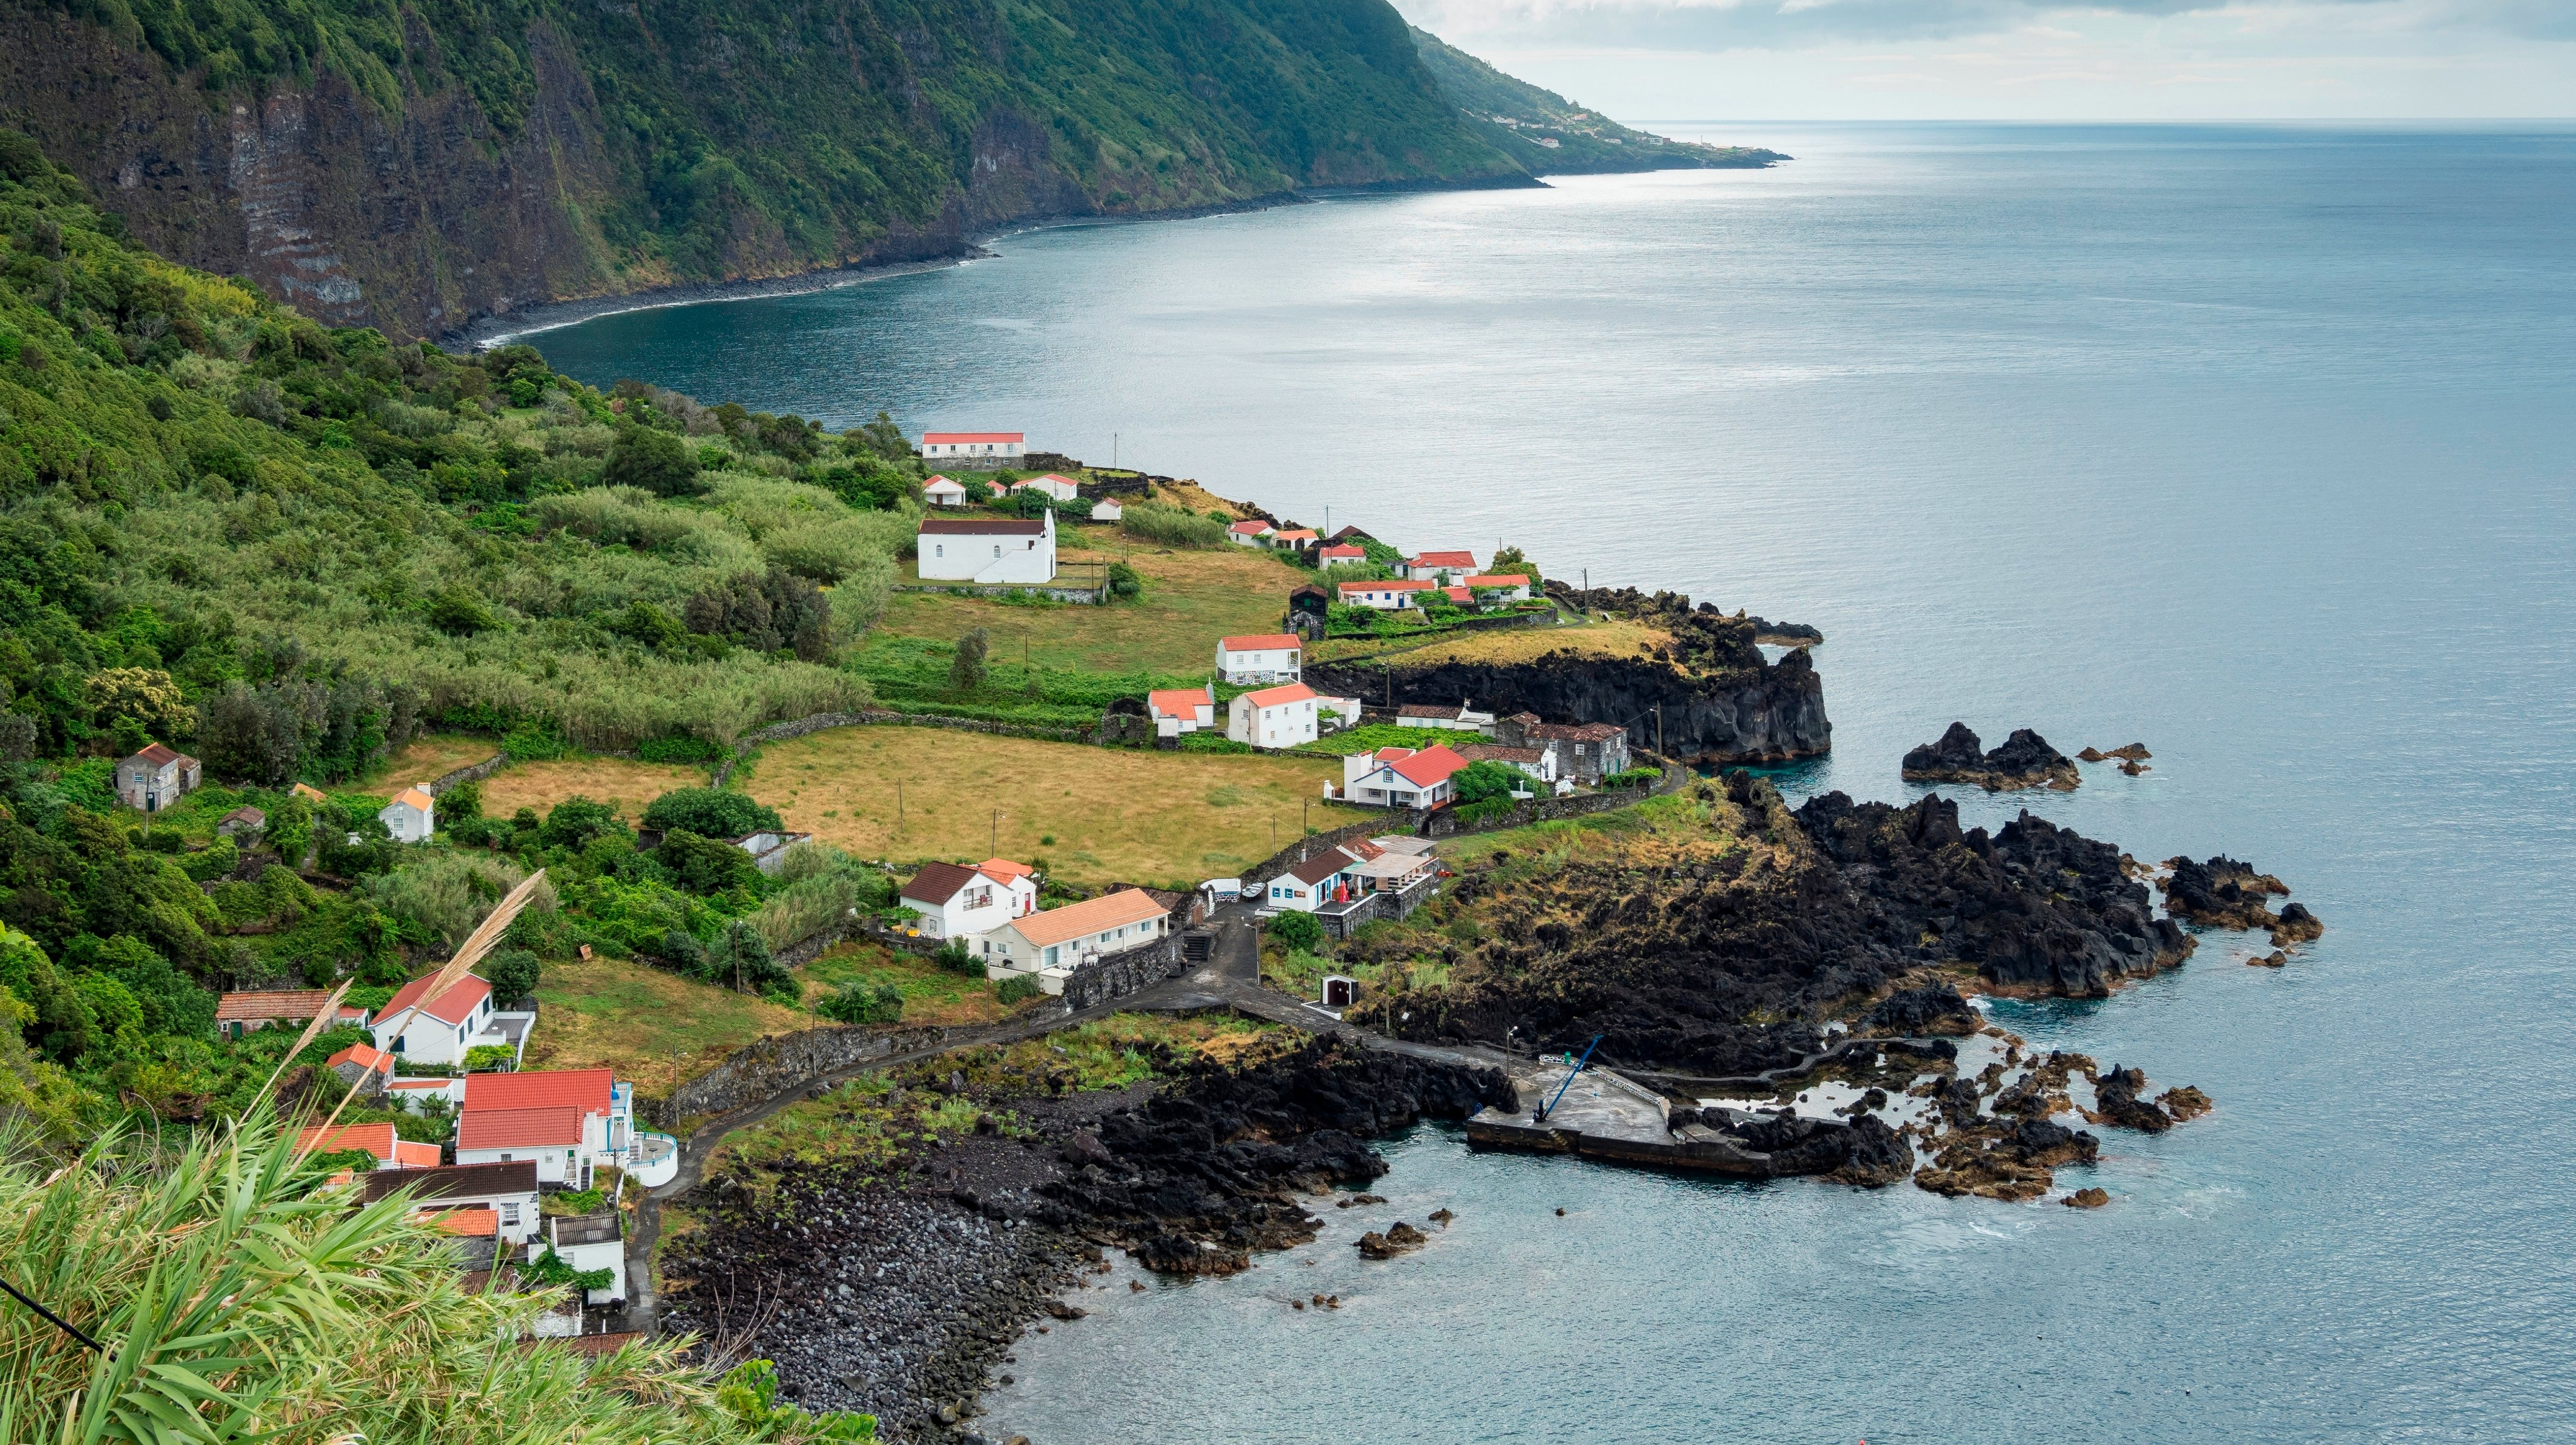 Faja das Almas on the southern coast. Sao Jorge Island. an island in the Azores (Ilhas dos Acores) in the Atlantic ocean. The Azores are an autonomous region of Portugal. Europe. Portugal. Azores.